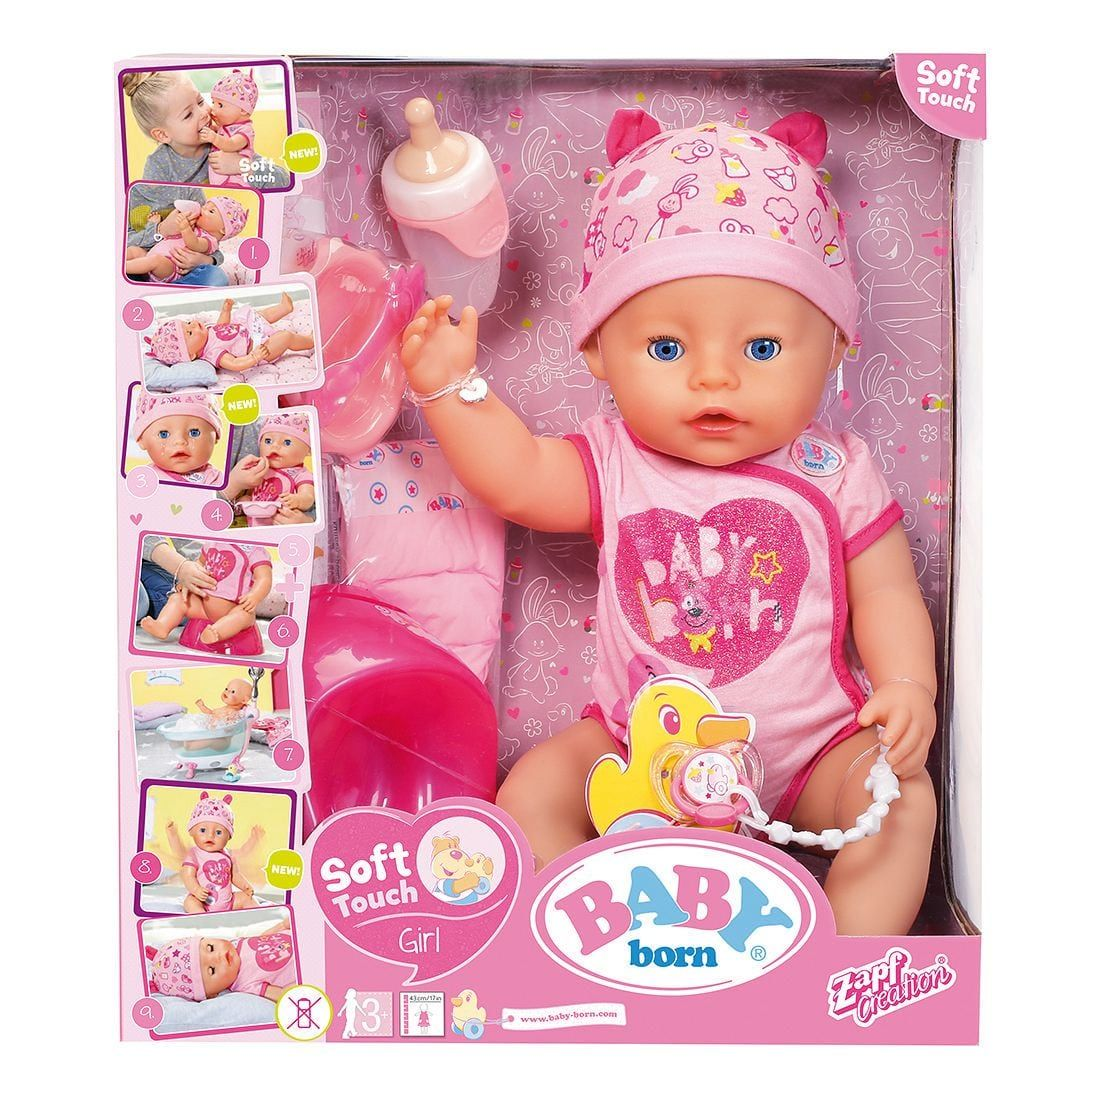 Baby Born Soft Touch Doll Pink Target Australia Baby Born Baby Doll Nursery Baby Doll Accessories